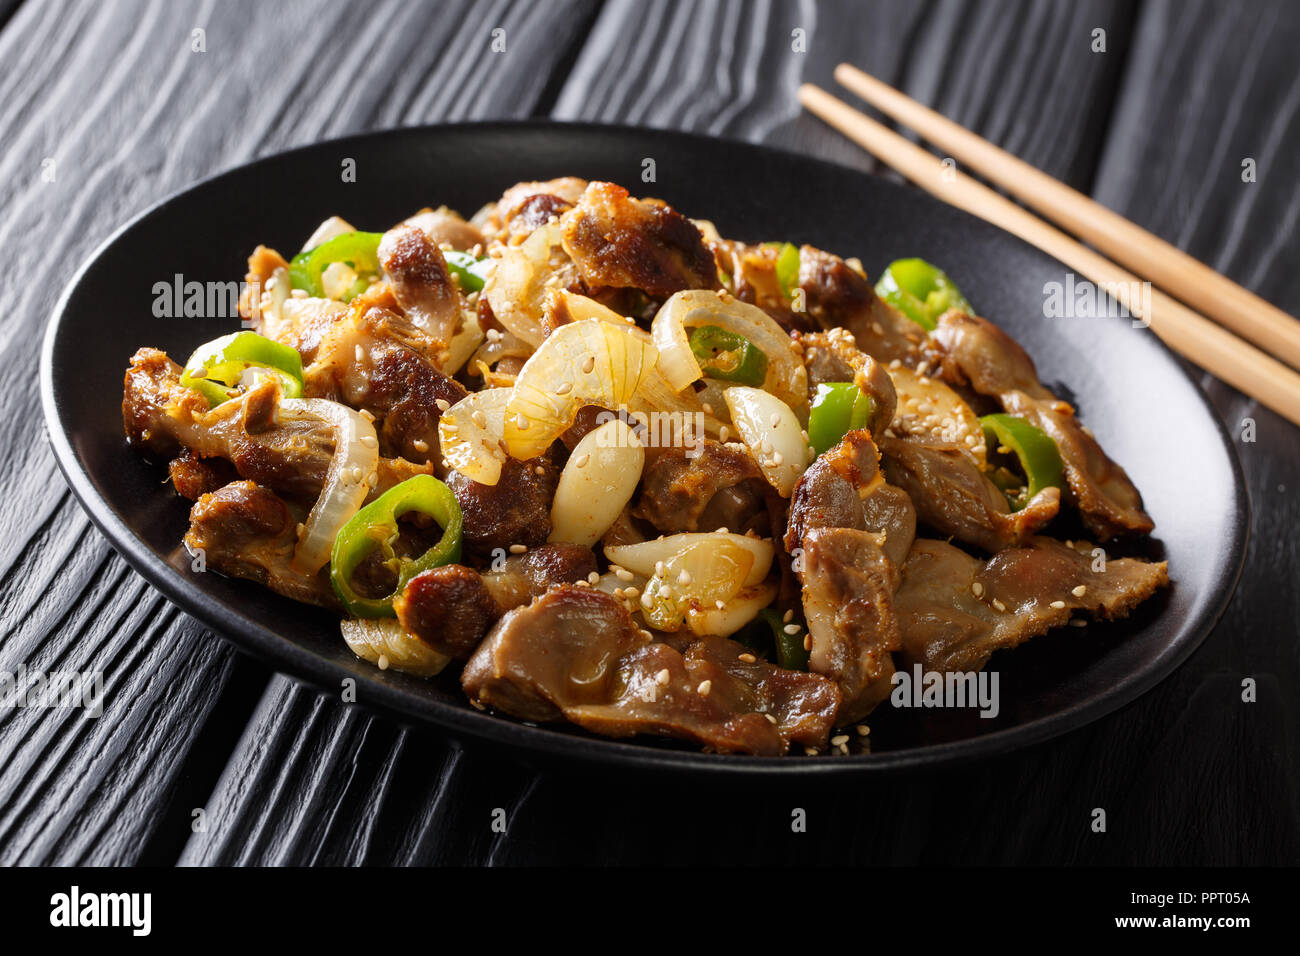 Asian food: spicy chicken stomachs with jalapeno pepper, onion, garlic and sesame close-up on a plate. horizontal - Stock Image